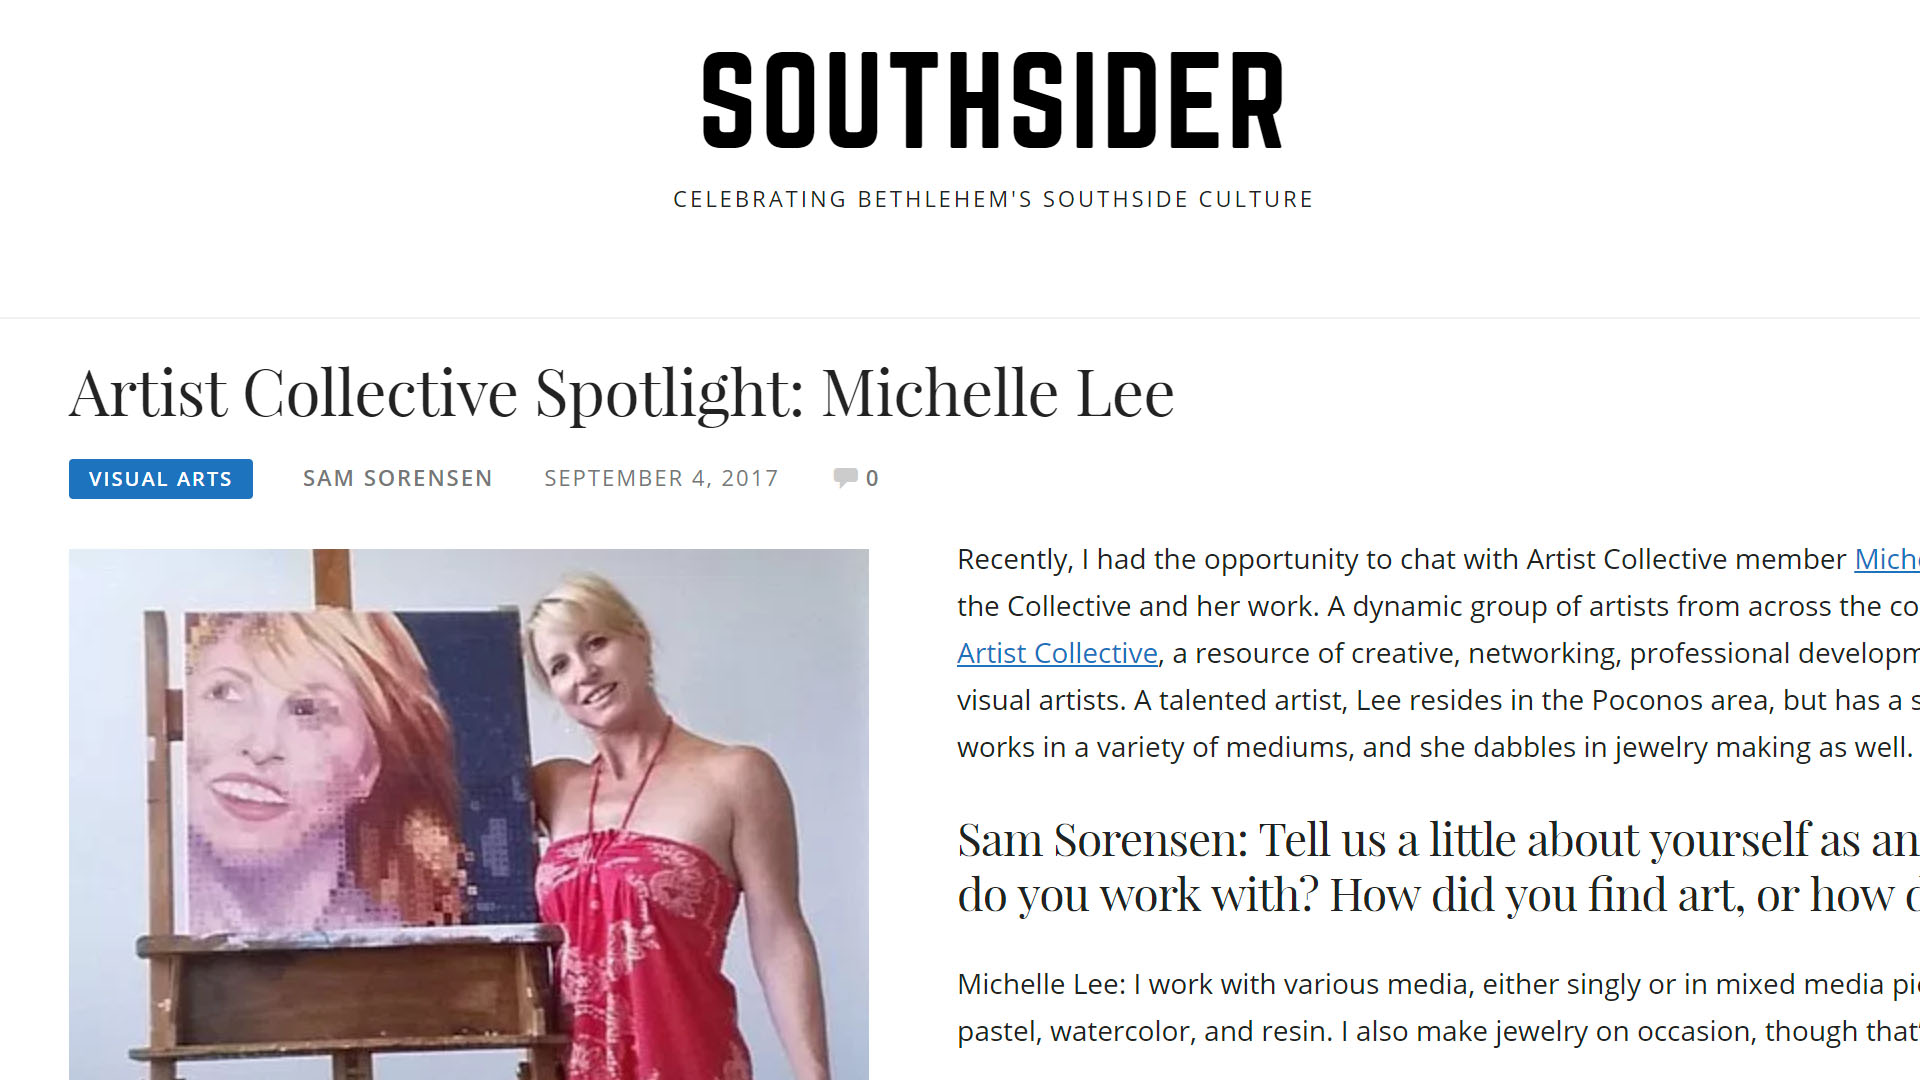 Southsider Article about Artist Collective membership